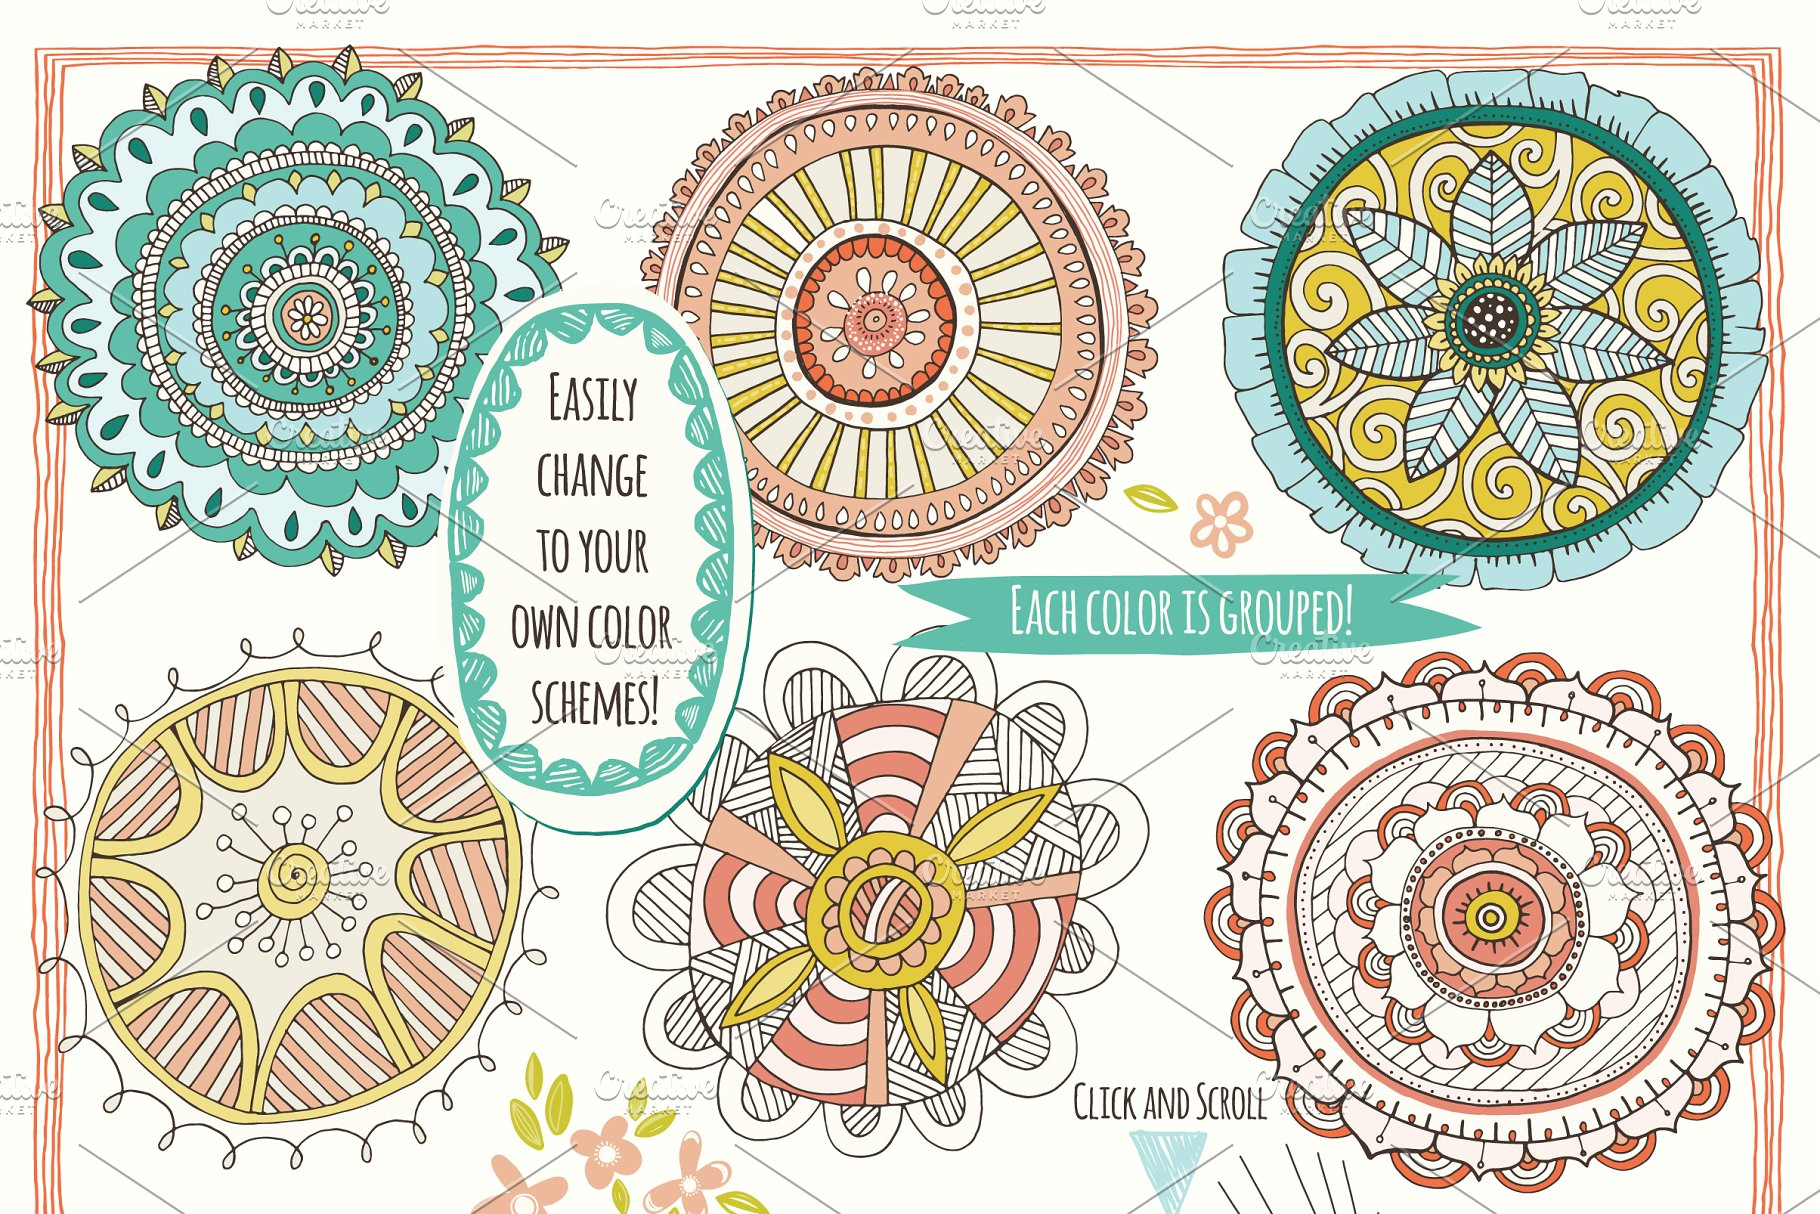 cstep-mandala-dreamer-clipart-illustrations02-.jpg